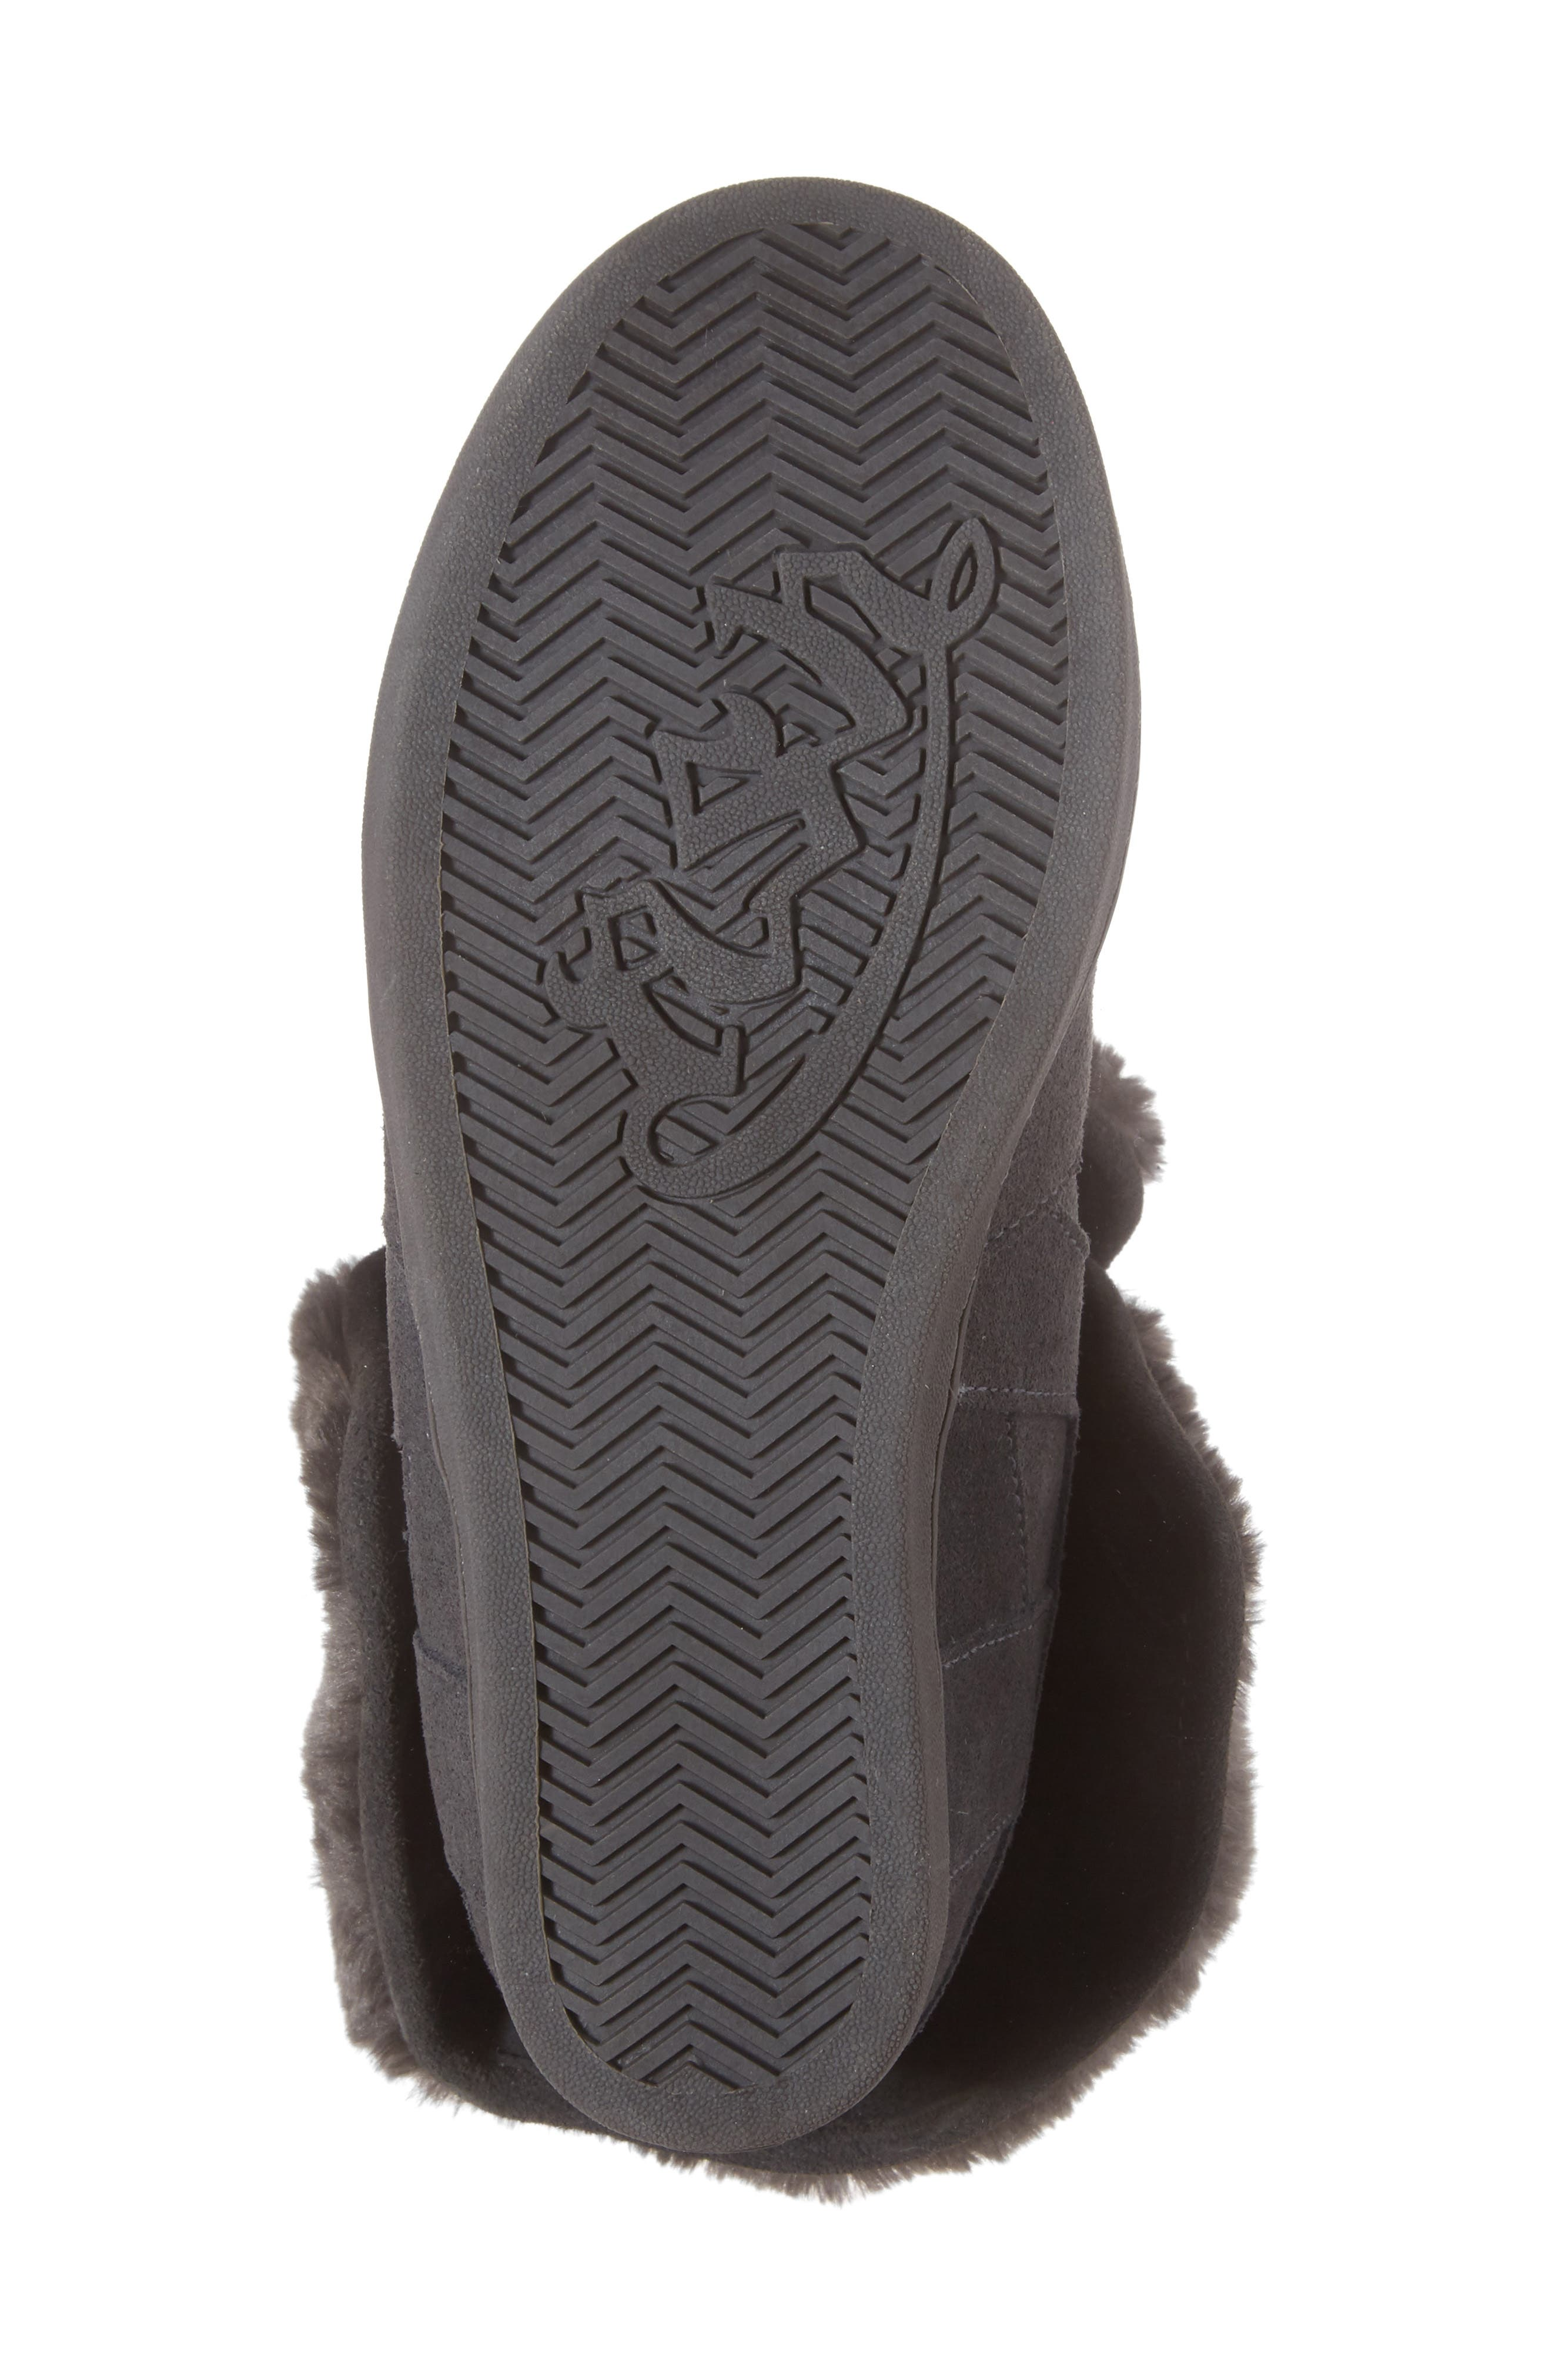 Boogie Beaver Faux Fur Cuffed Bootie,                             Alternate thumbnail 6, color,                             052